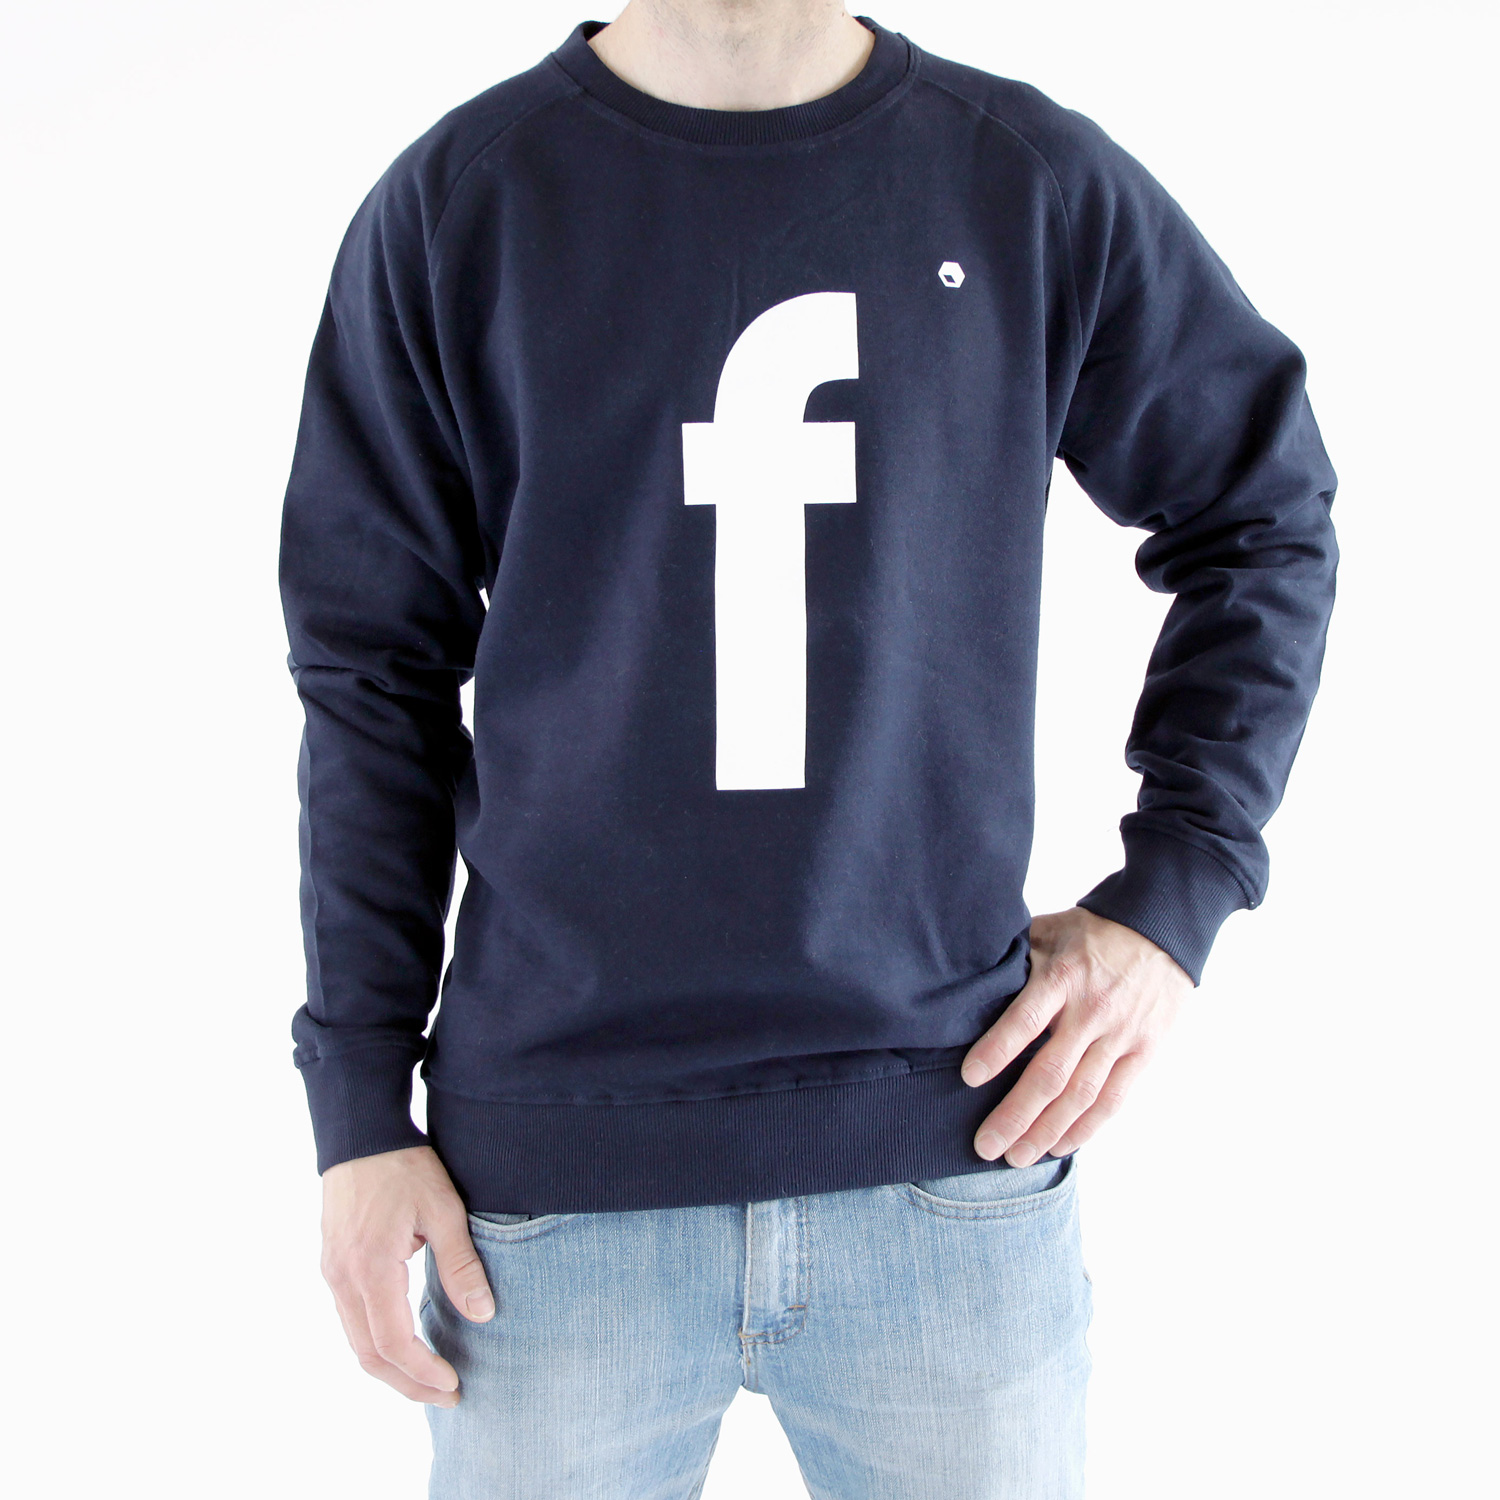 Flathold-apparel-sweat-f-navy